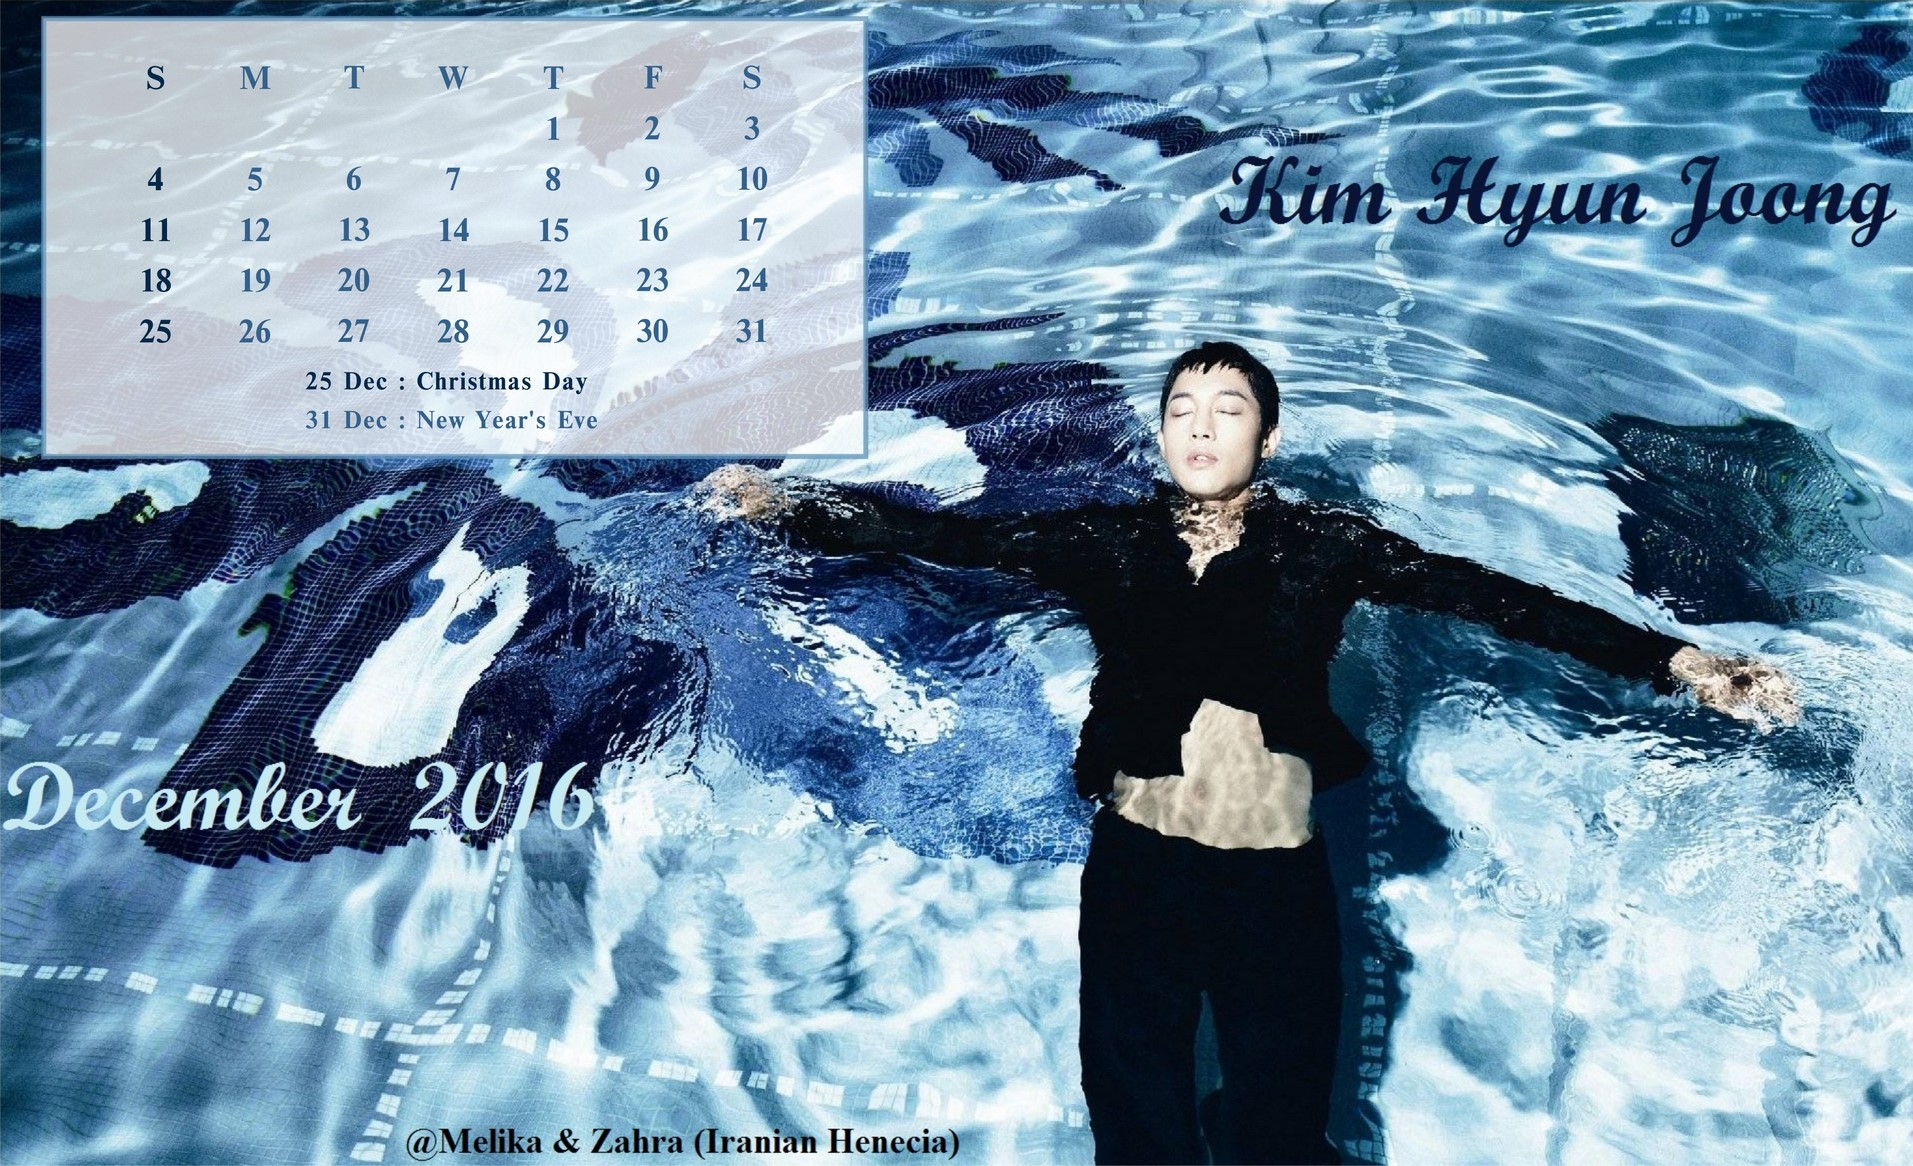 Calendar of December 2016 - Fanart by Melika and Zahra